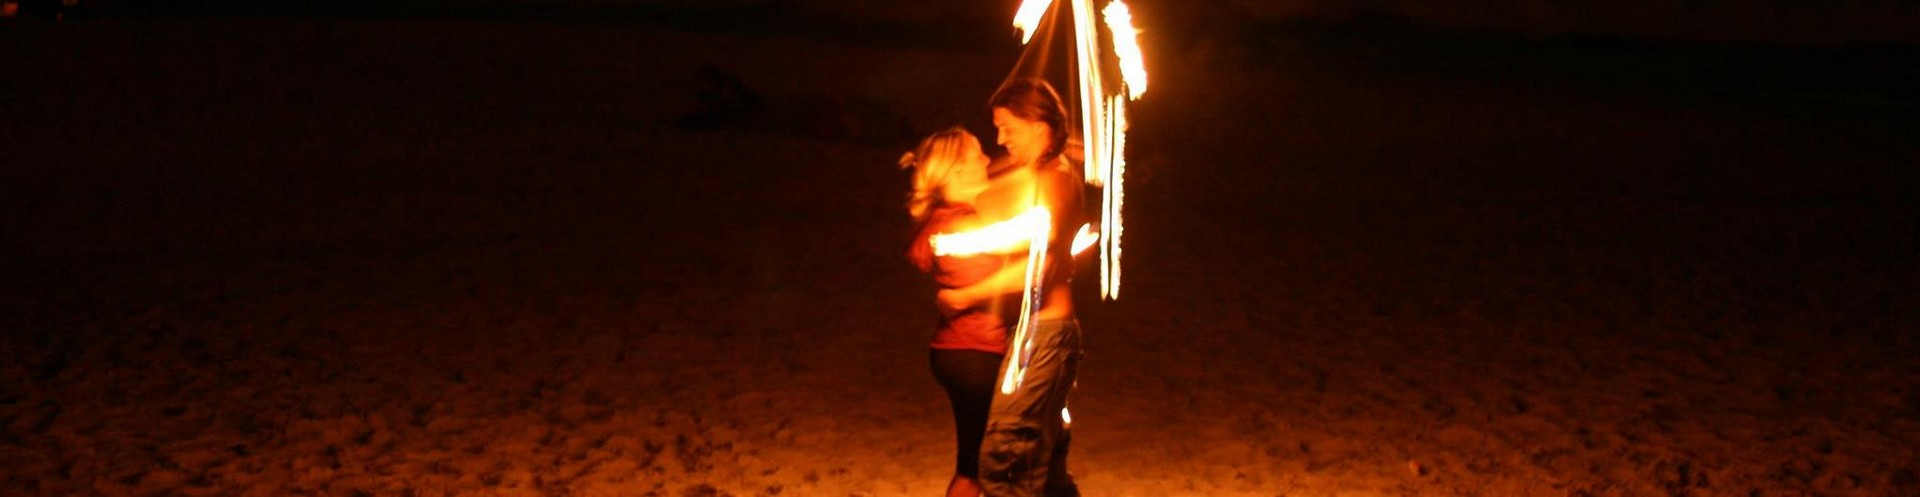 Hoop Flow Love Fire and LED Hula hoops Cape Town